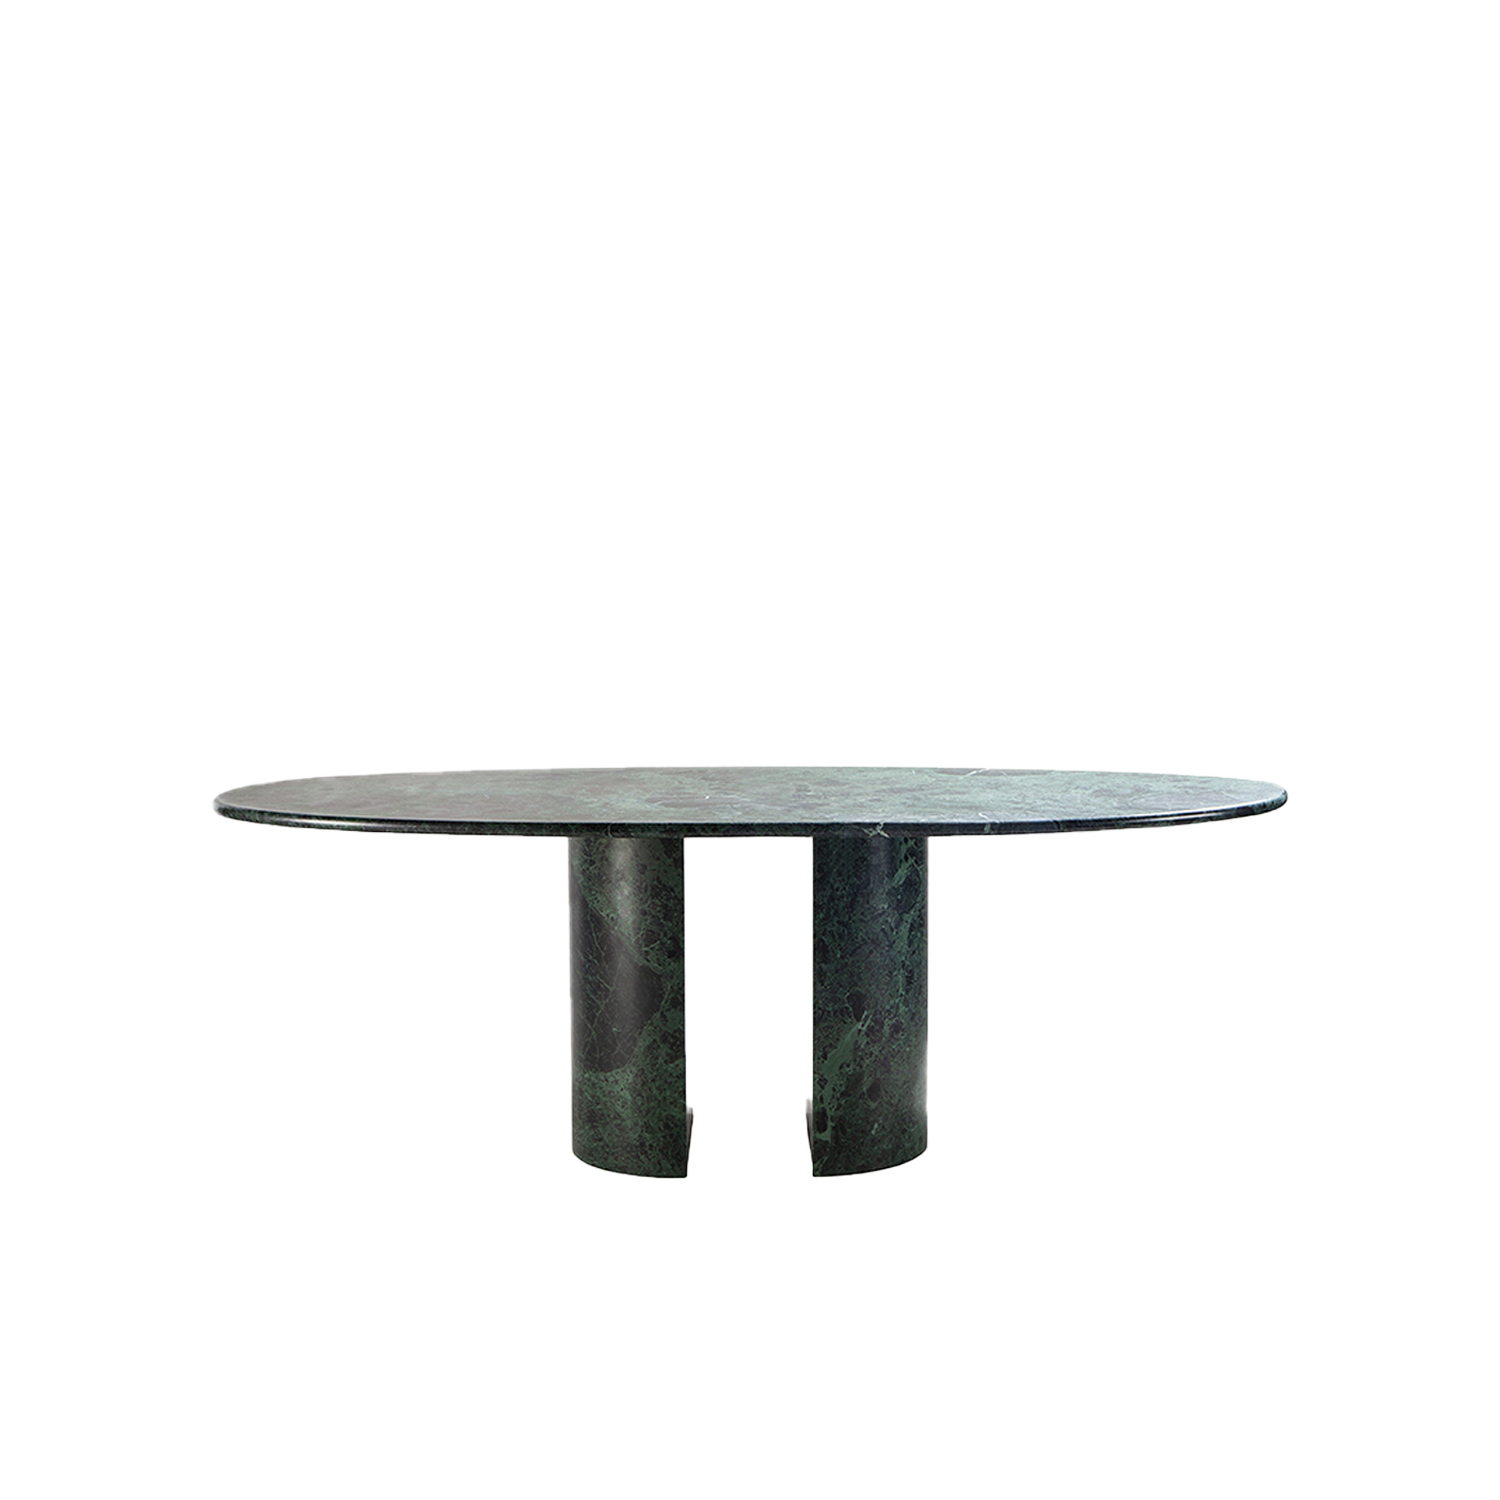 Dolmen Table - The Dolmen table, designed by Giulio Cappellini, reflects the tradition of classic marble with a twist inspired by the stylistic influences of the 1980's, here expressed through a carefully studied interplay of shapes.   The Dolmen has a majestic marble top, 3 cm thick, which rests atop two freestanding semi-circular bases made of the same material, further enhancing the support surface and ensuring a remarkably tactile experience.   The Dolmen table is available in three versions: white Carrara marble, green Alpi marble, and lightly straw-coloured Travertino.  | Matter of Stuff